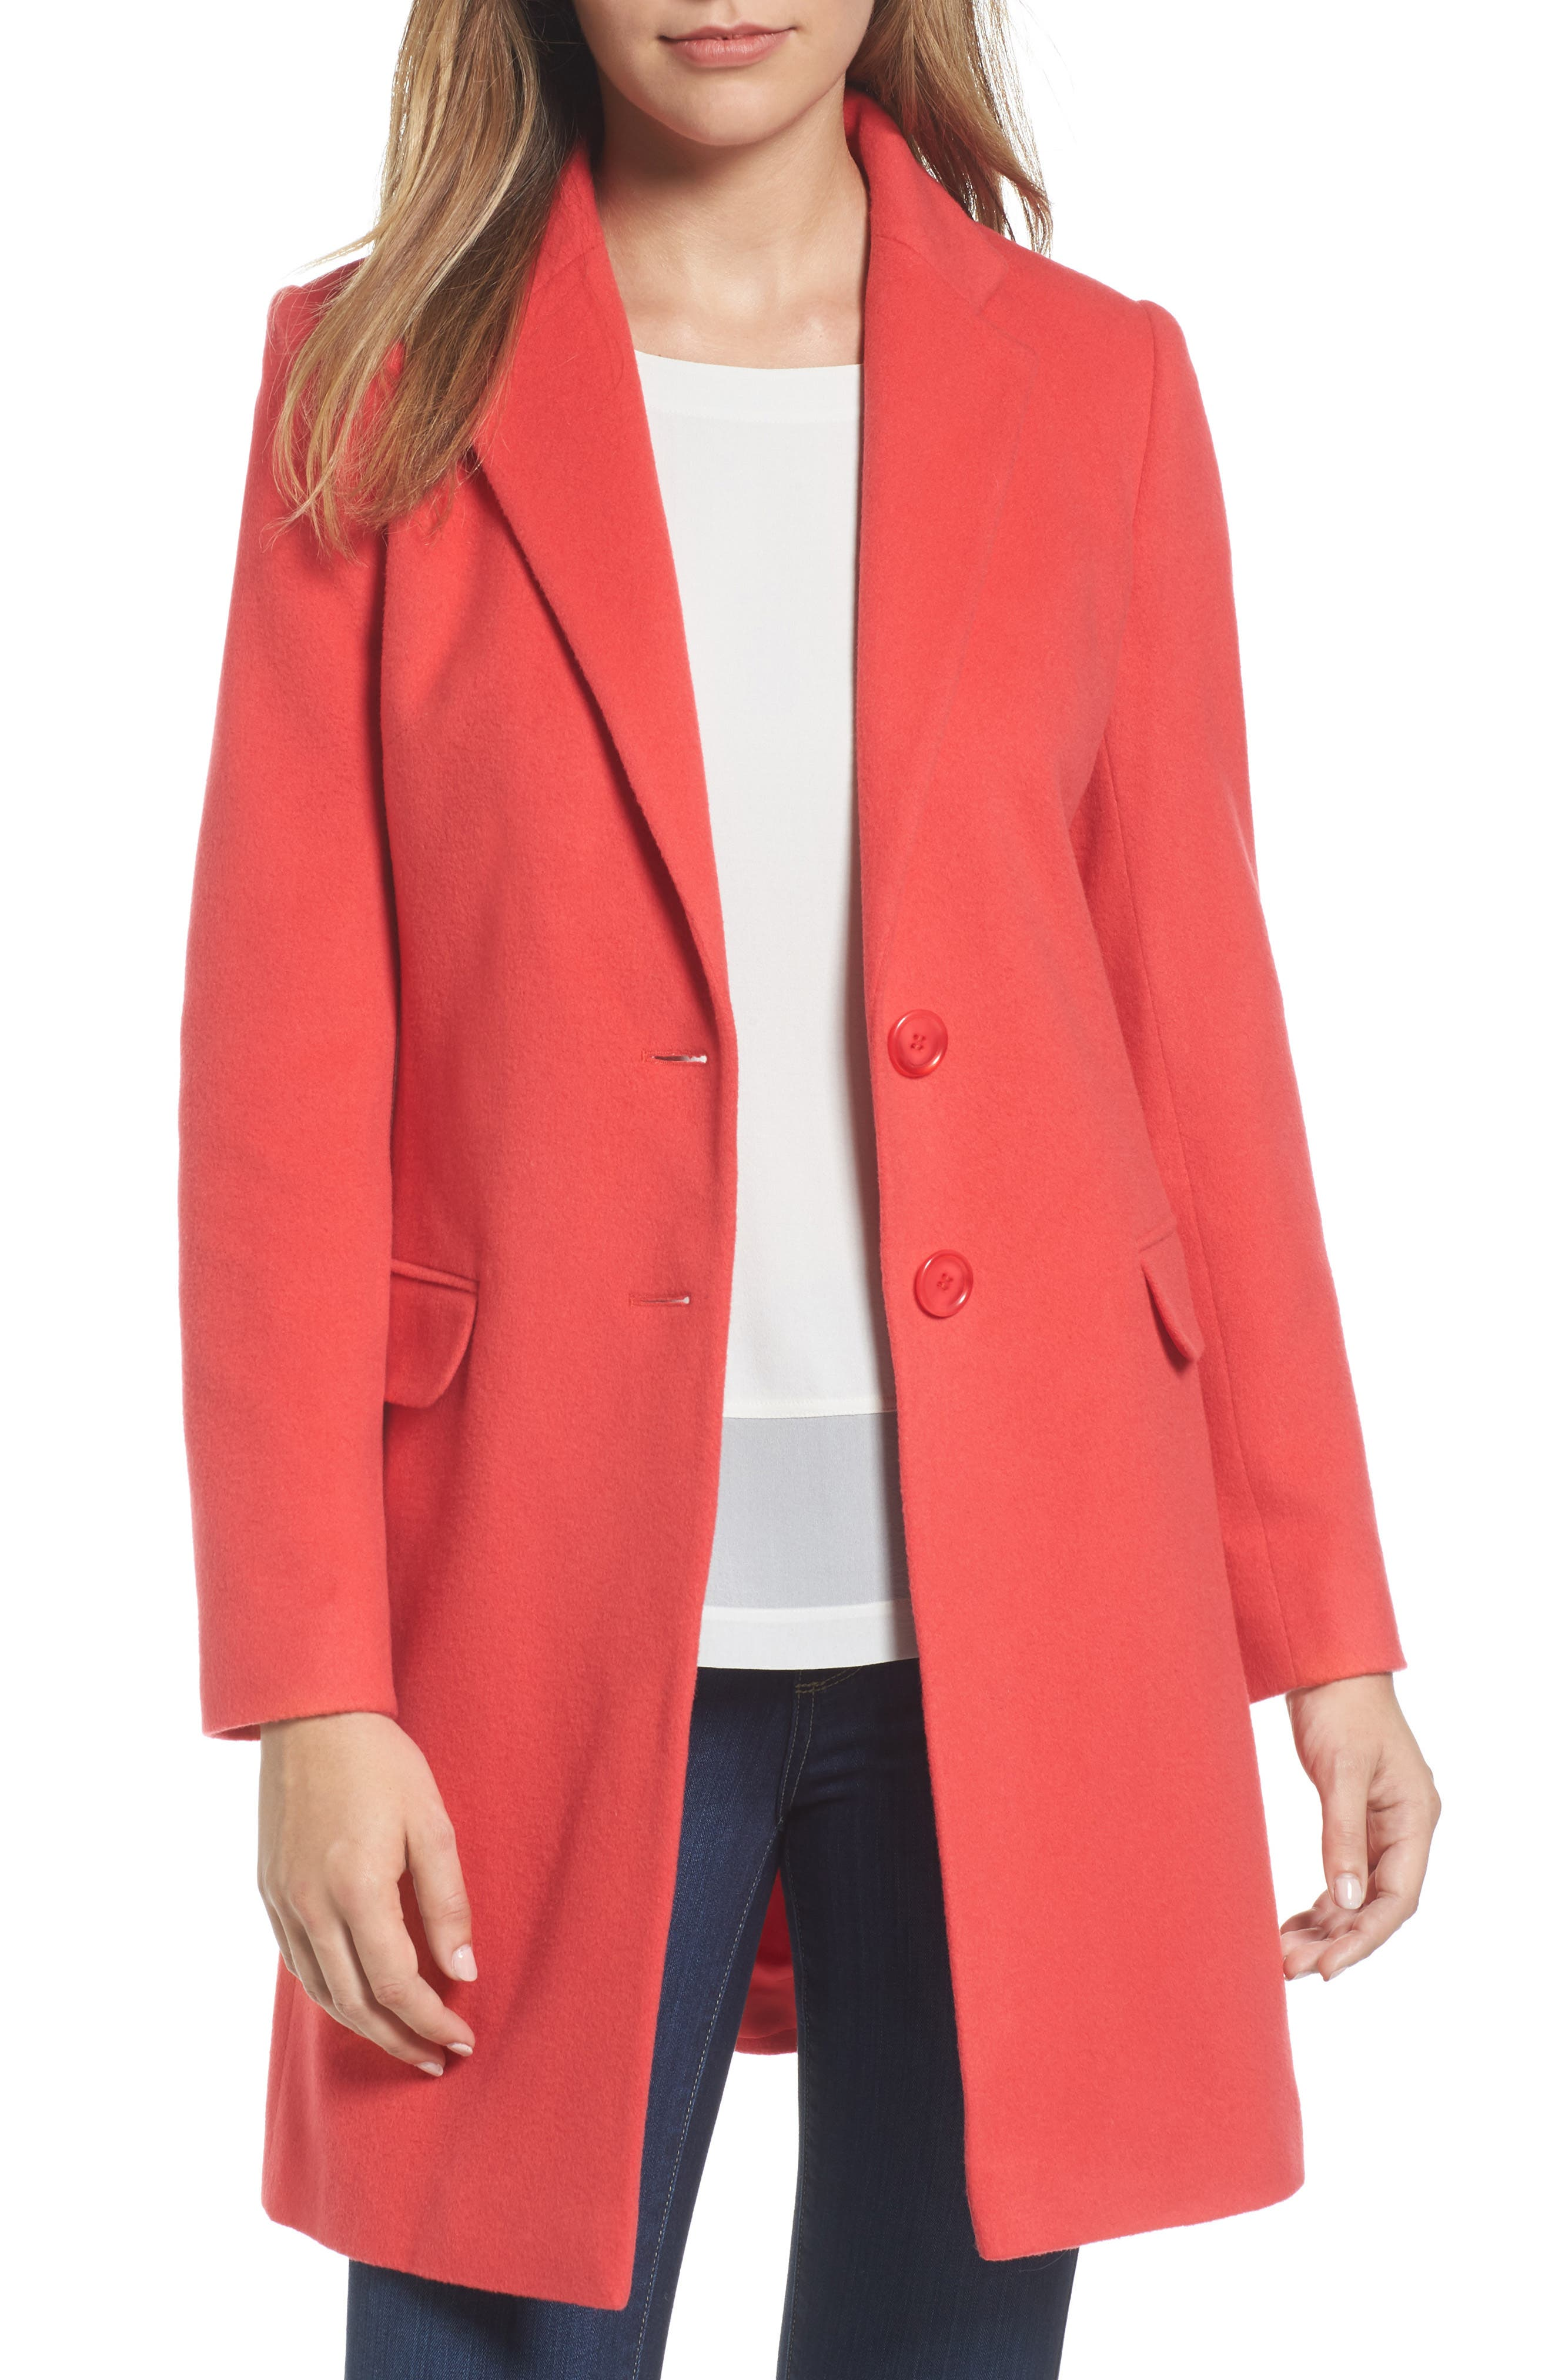 Charles Gray London Wool Blend College Coat,                         Main,                         color, Coral